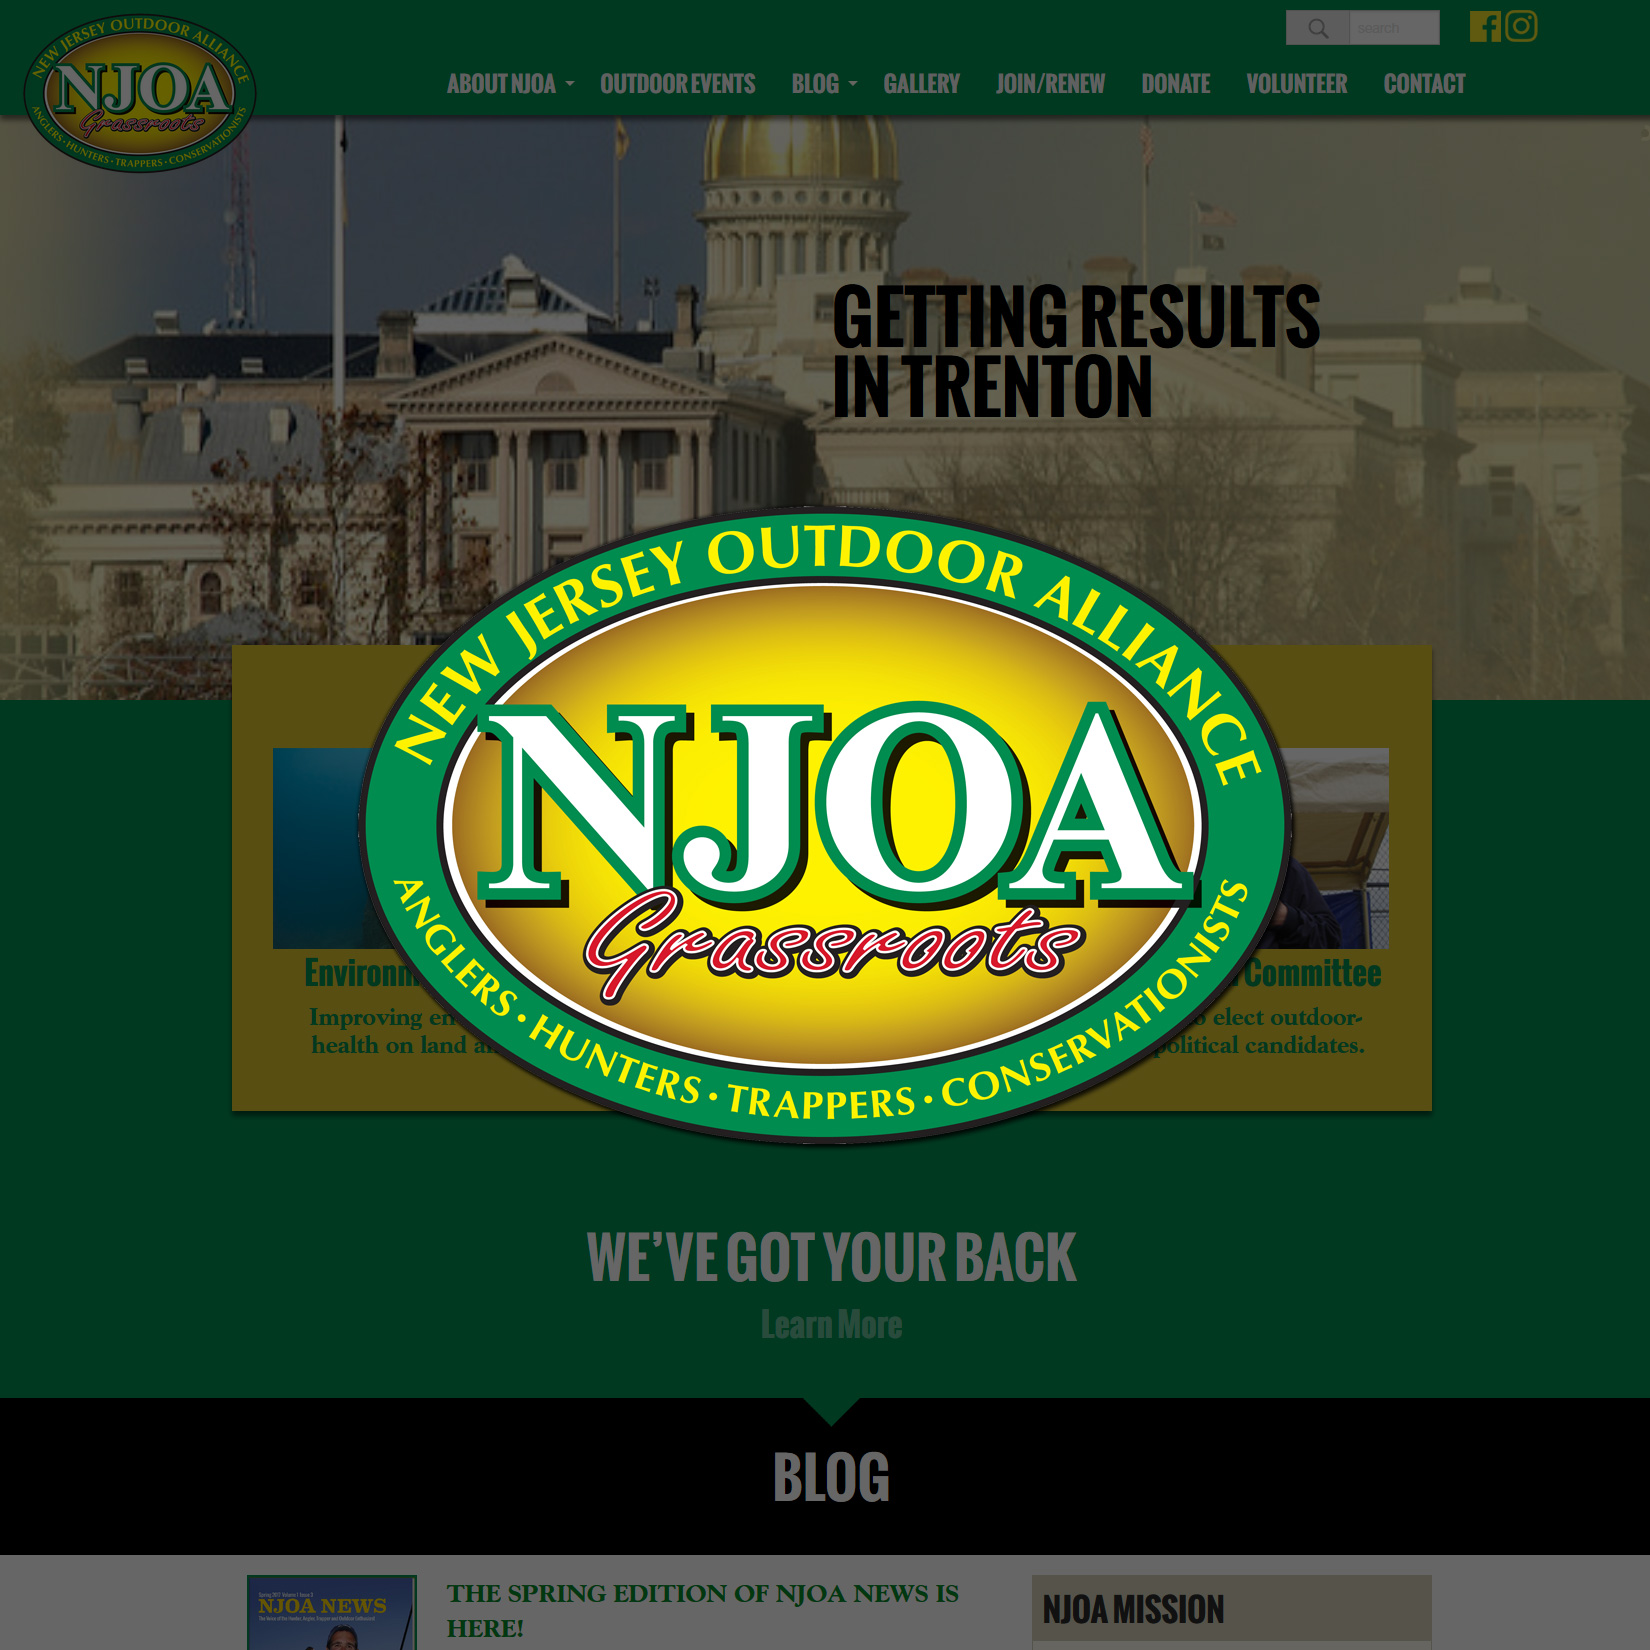 New Jersey Outdoor Alliance Wordpress Website